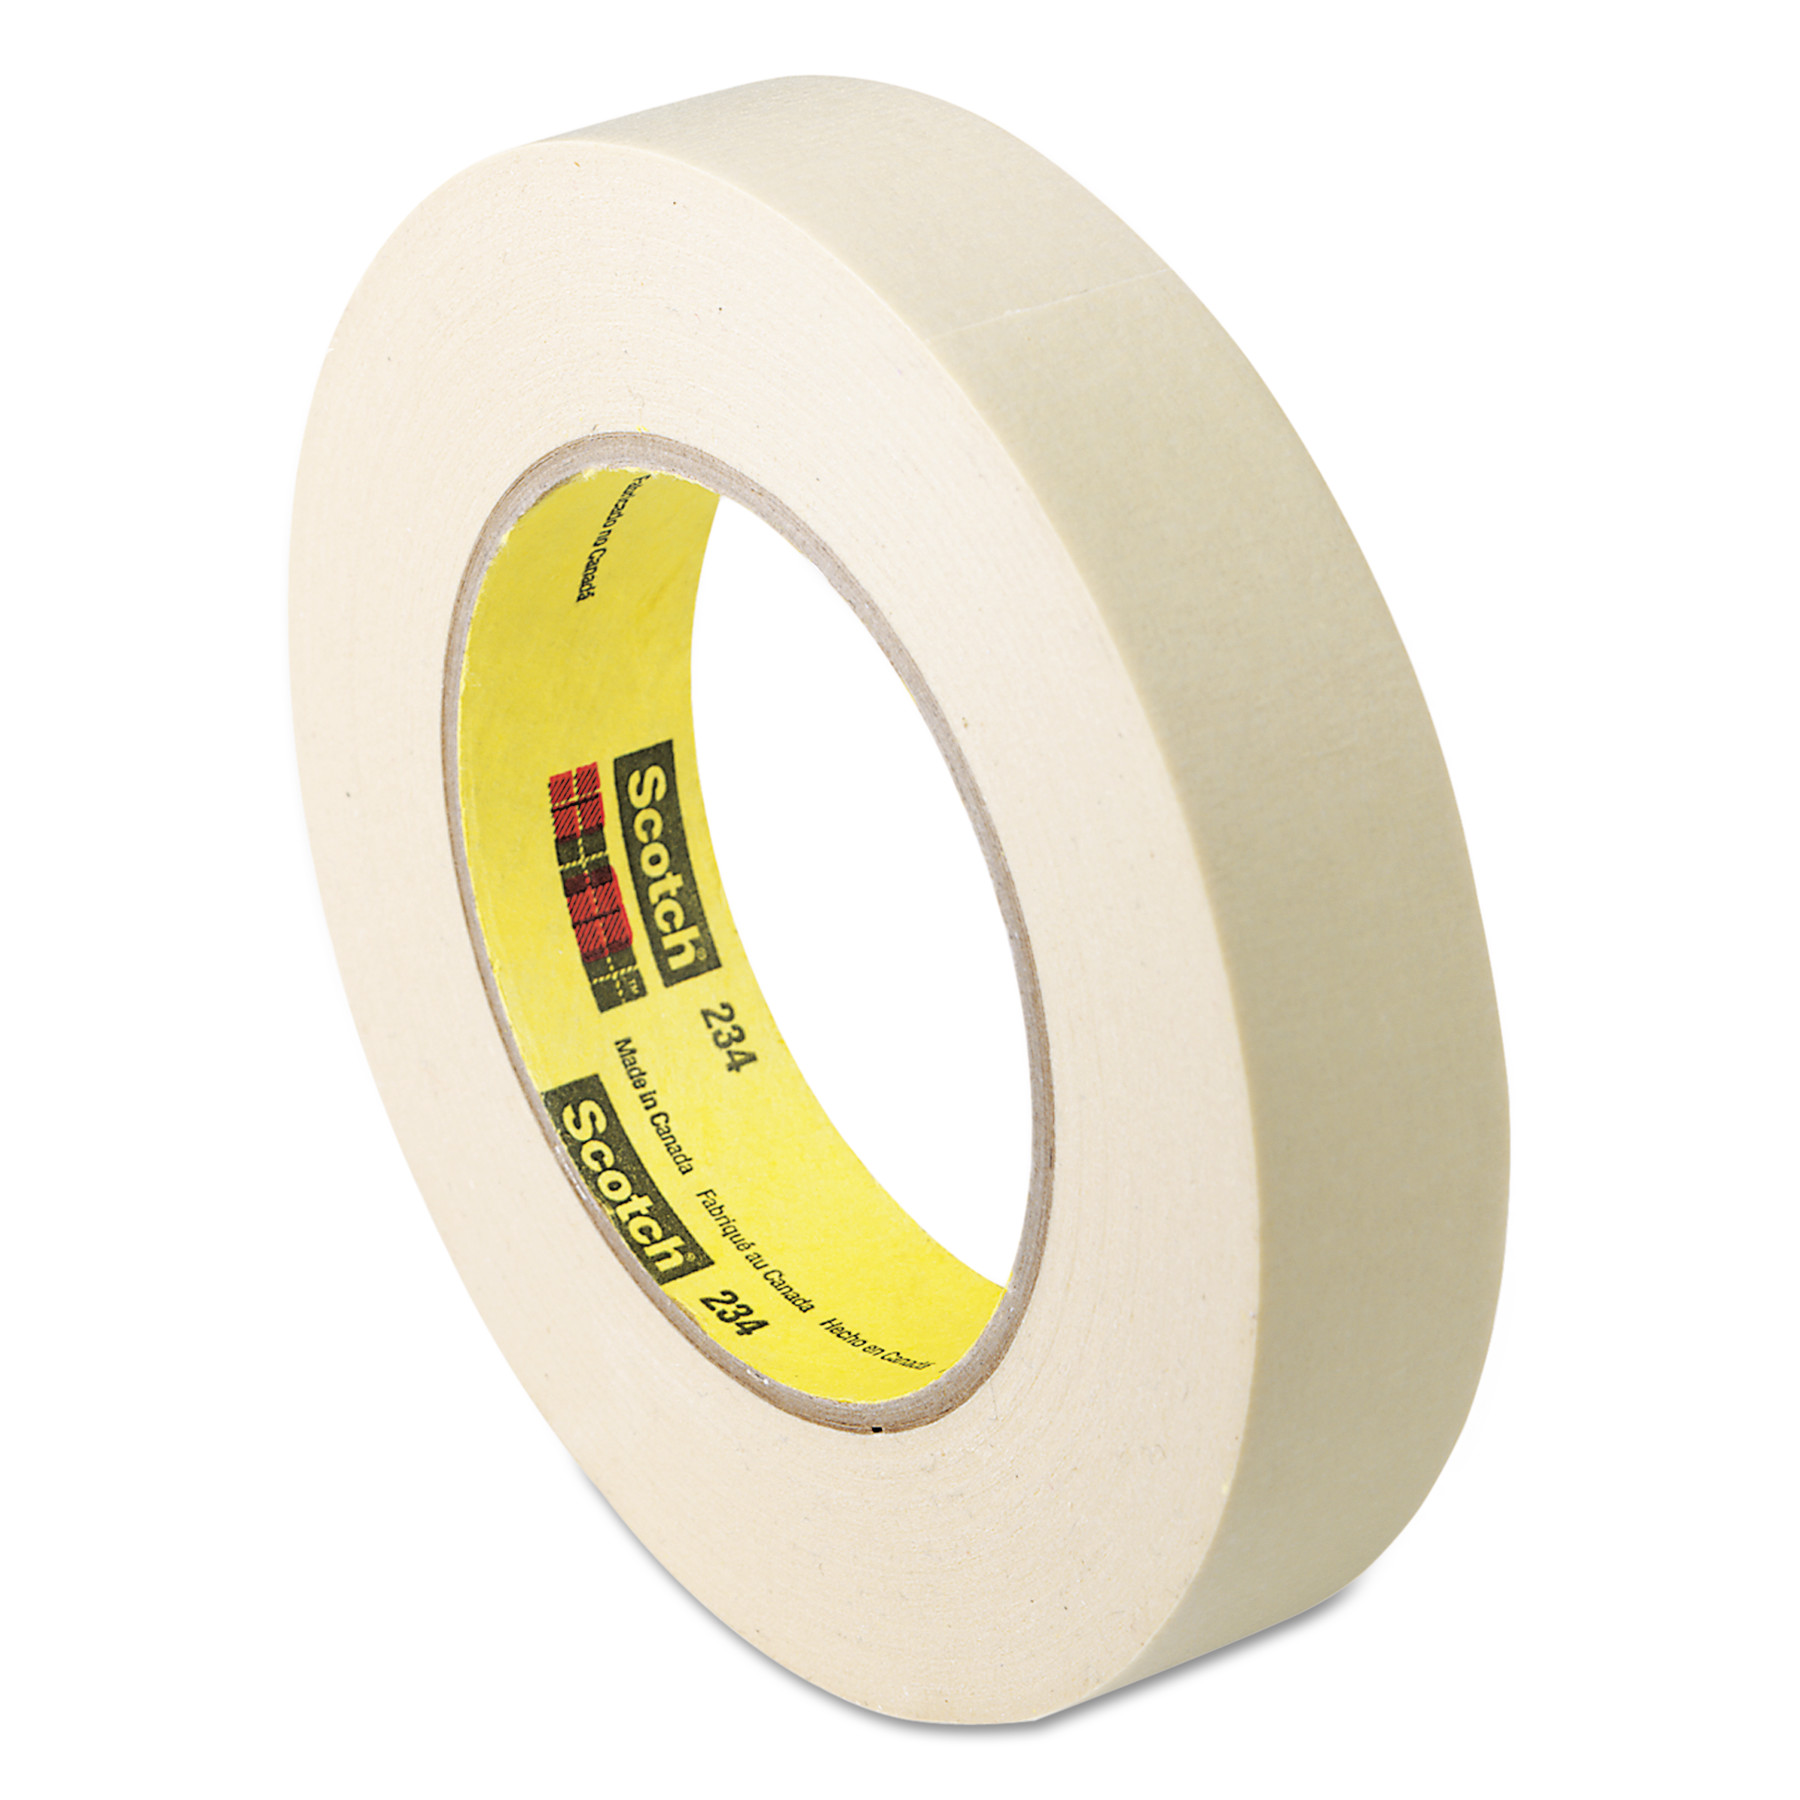 Scotch General Purpose Masking Tape 234, 24mm x 55m, 3\